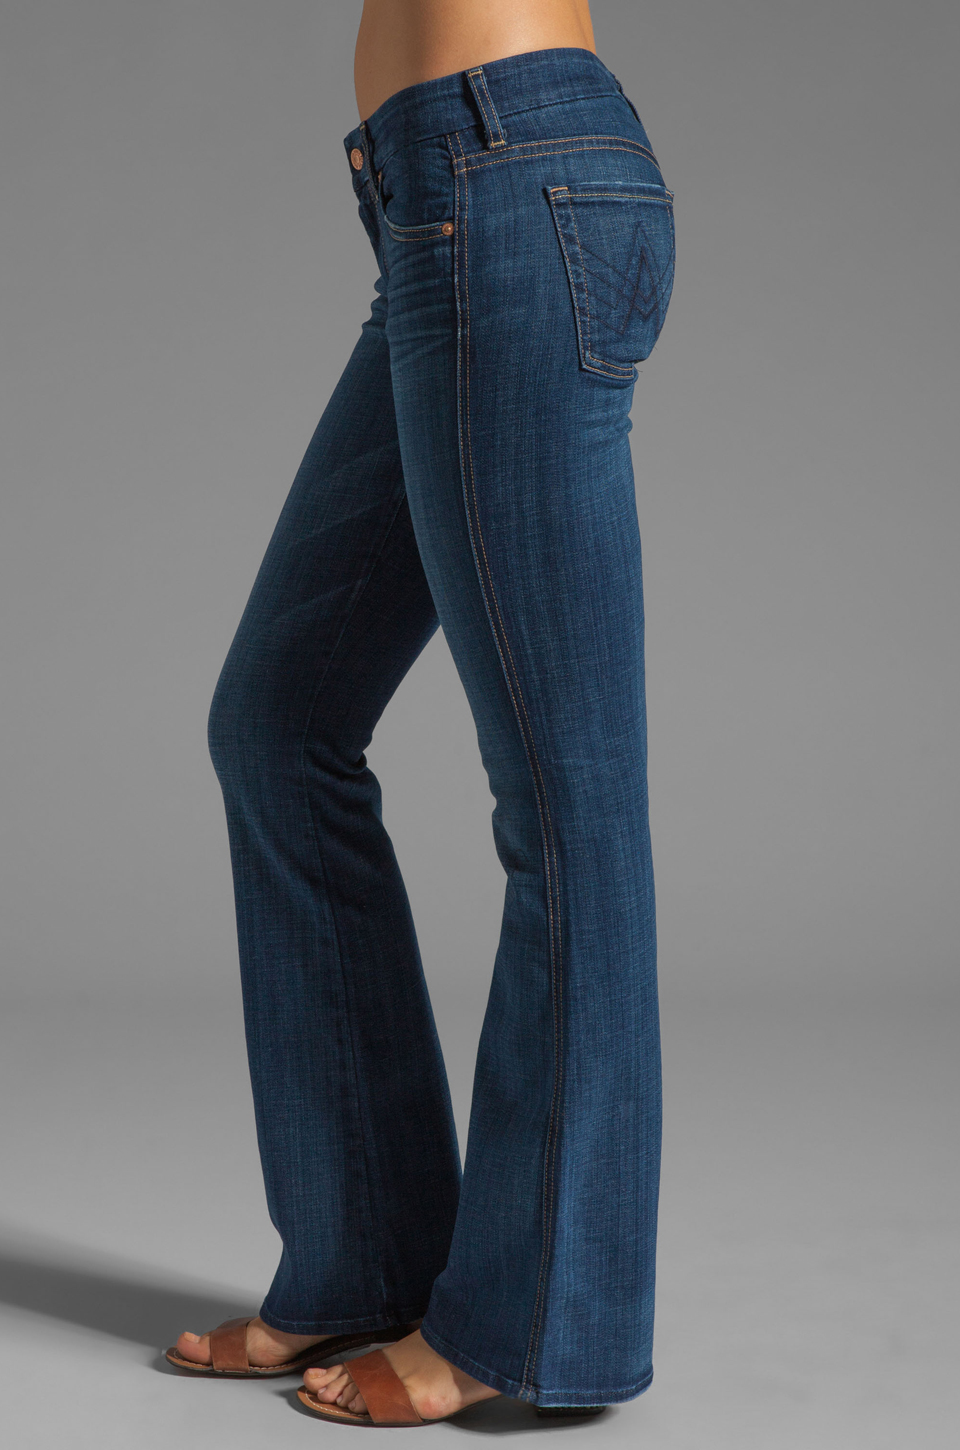 7 For All Mankind Lexie